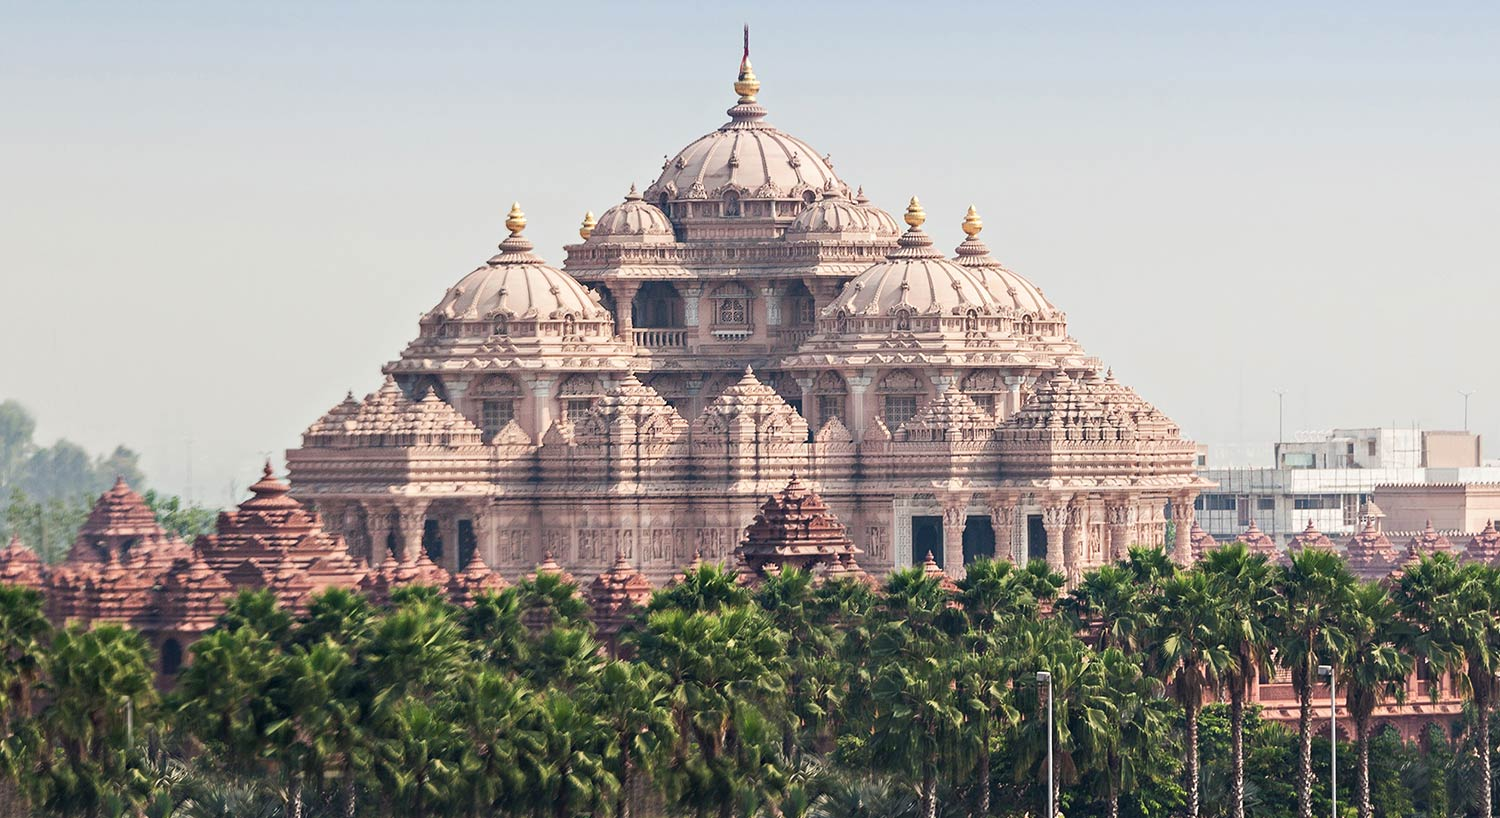 Exterior of a Hindu temple in Delhi